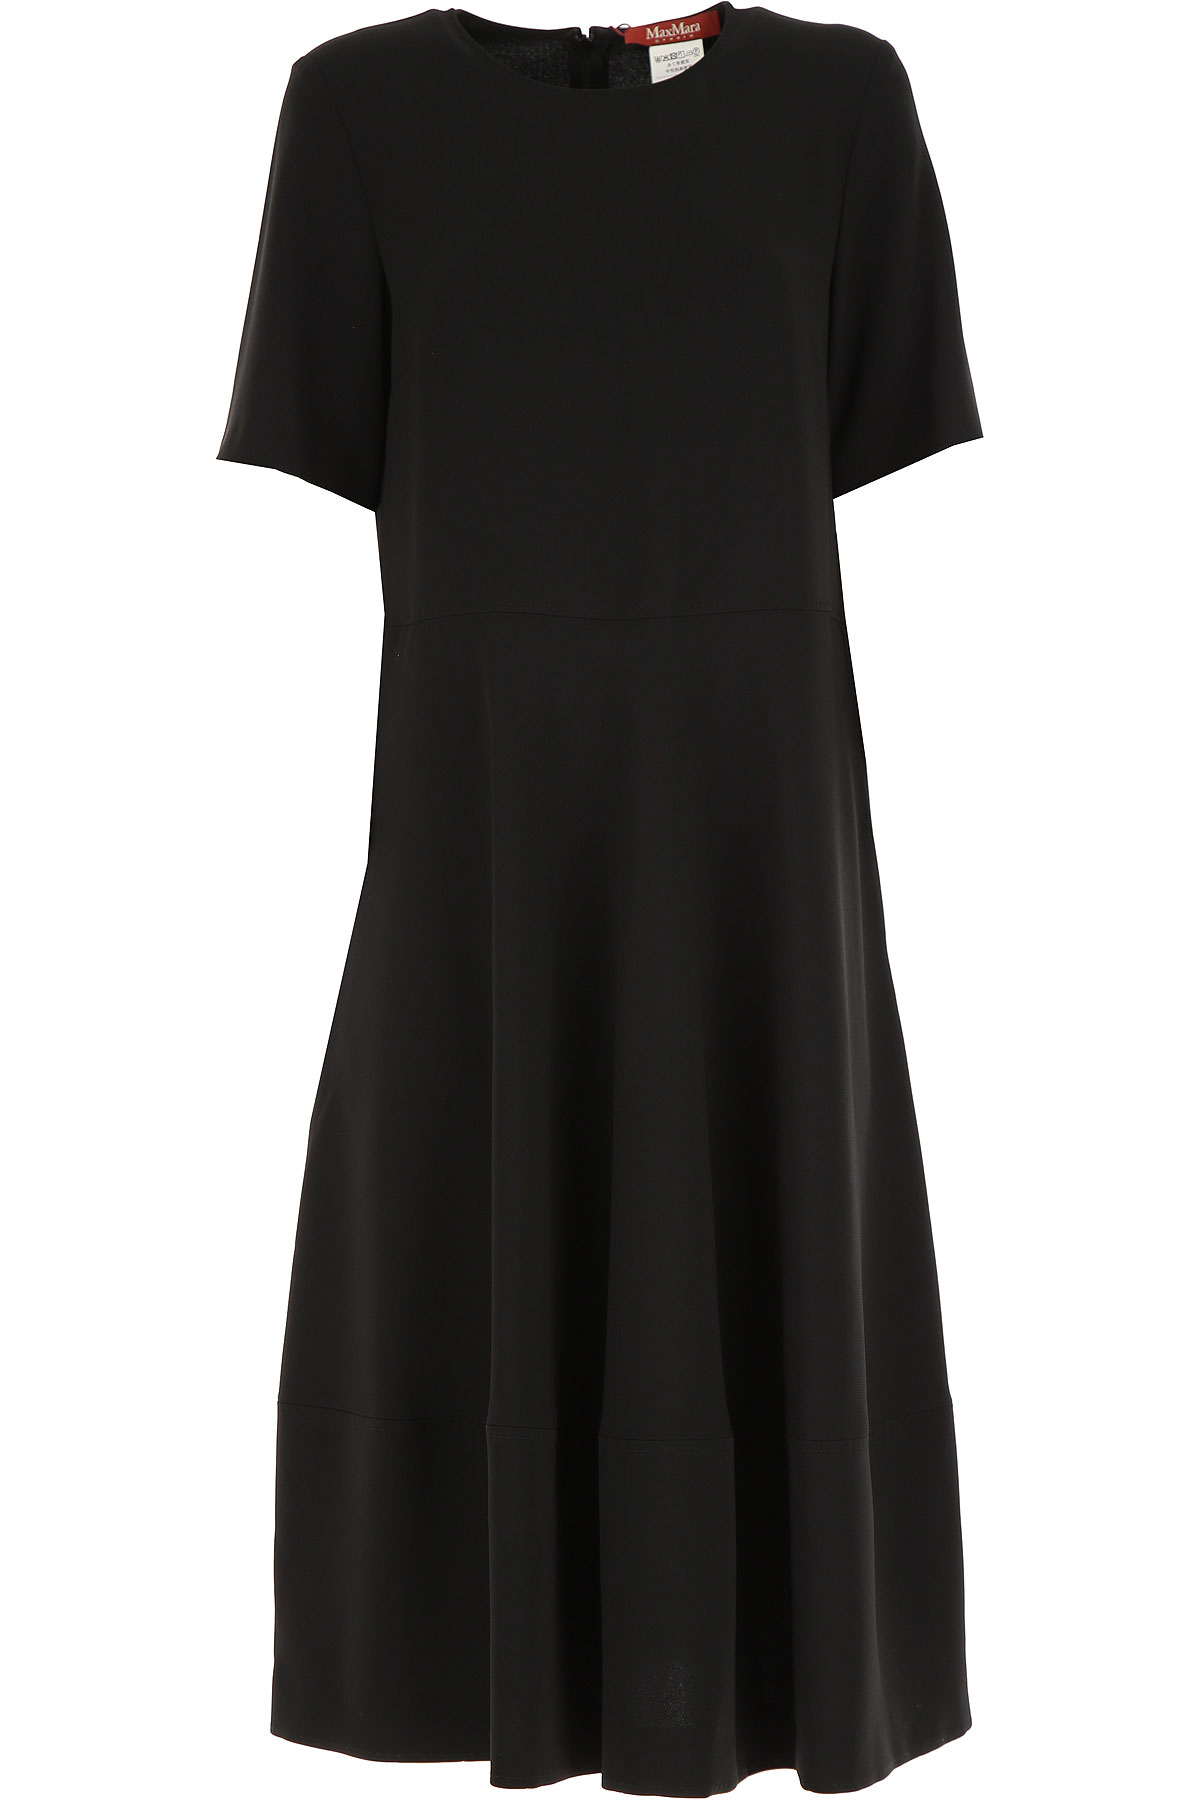 Max Mara Dress for Women, Evening Cocktail Party On Sale, Black, Triacetate, 2019, 4 6